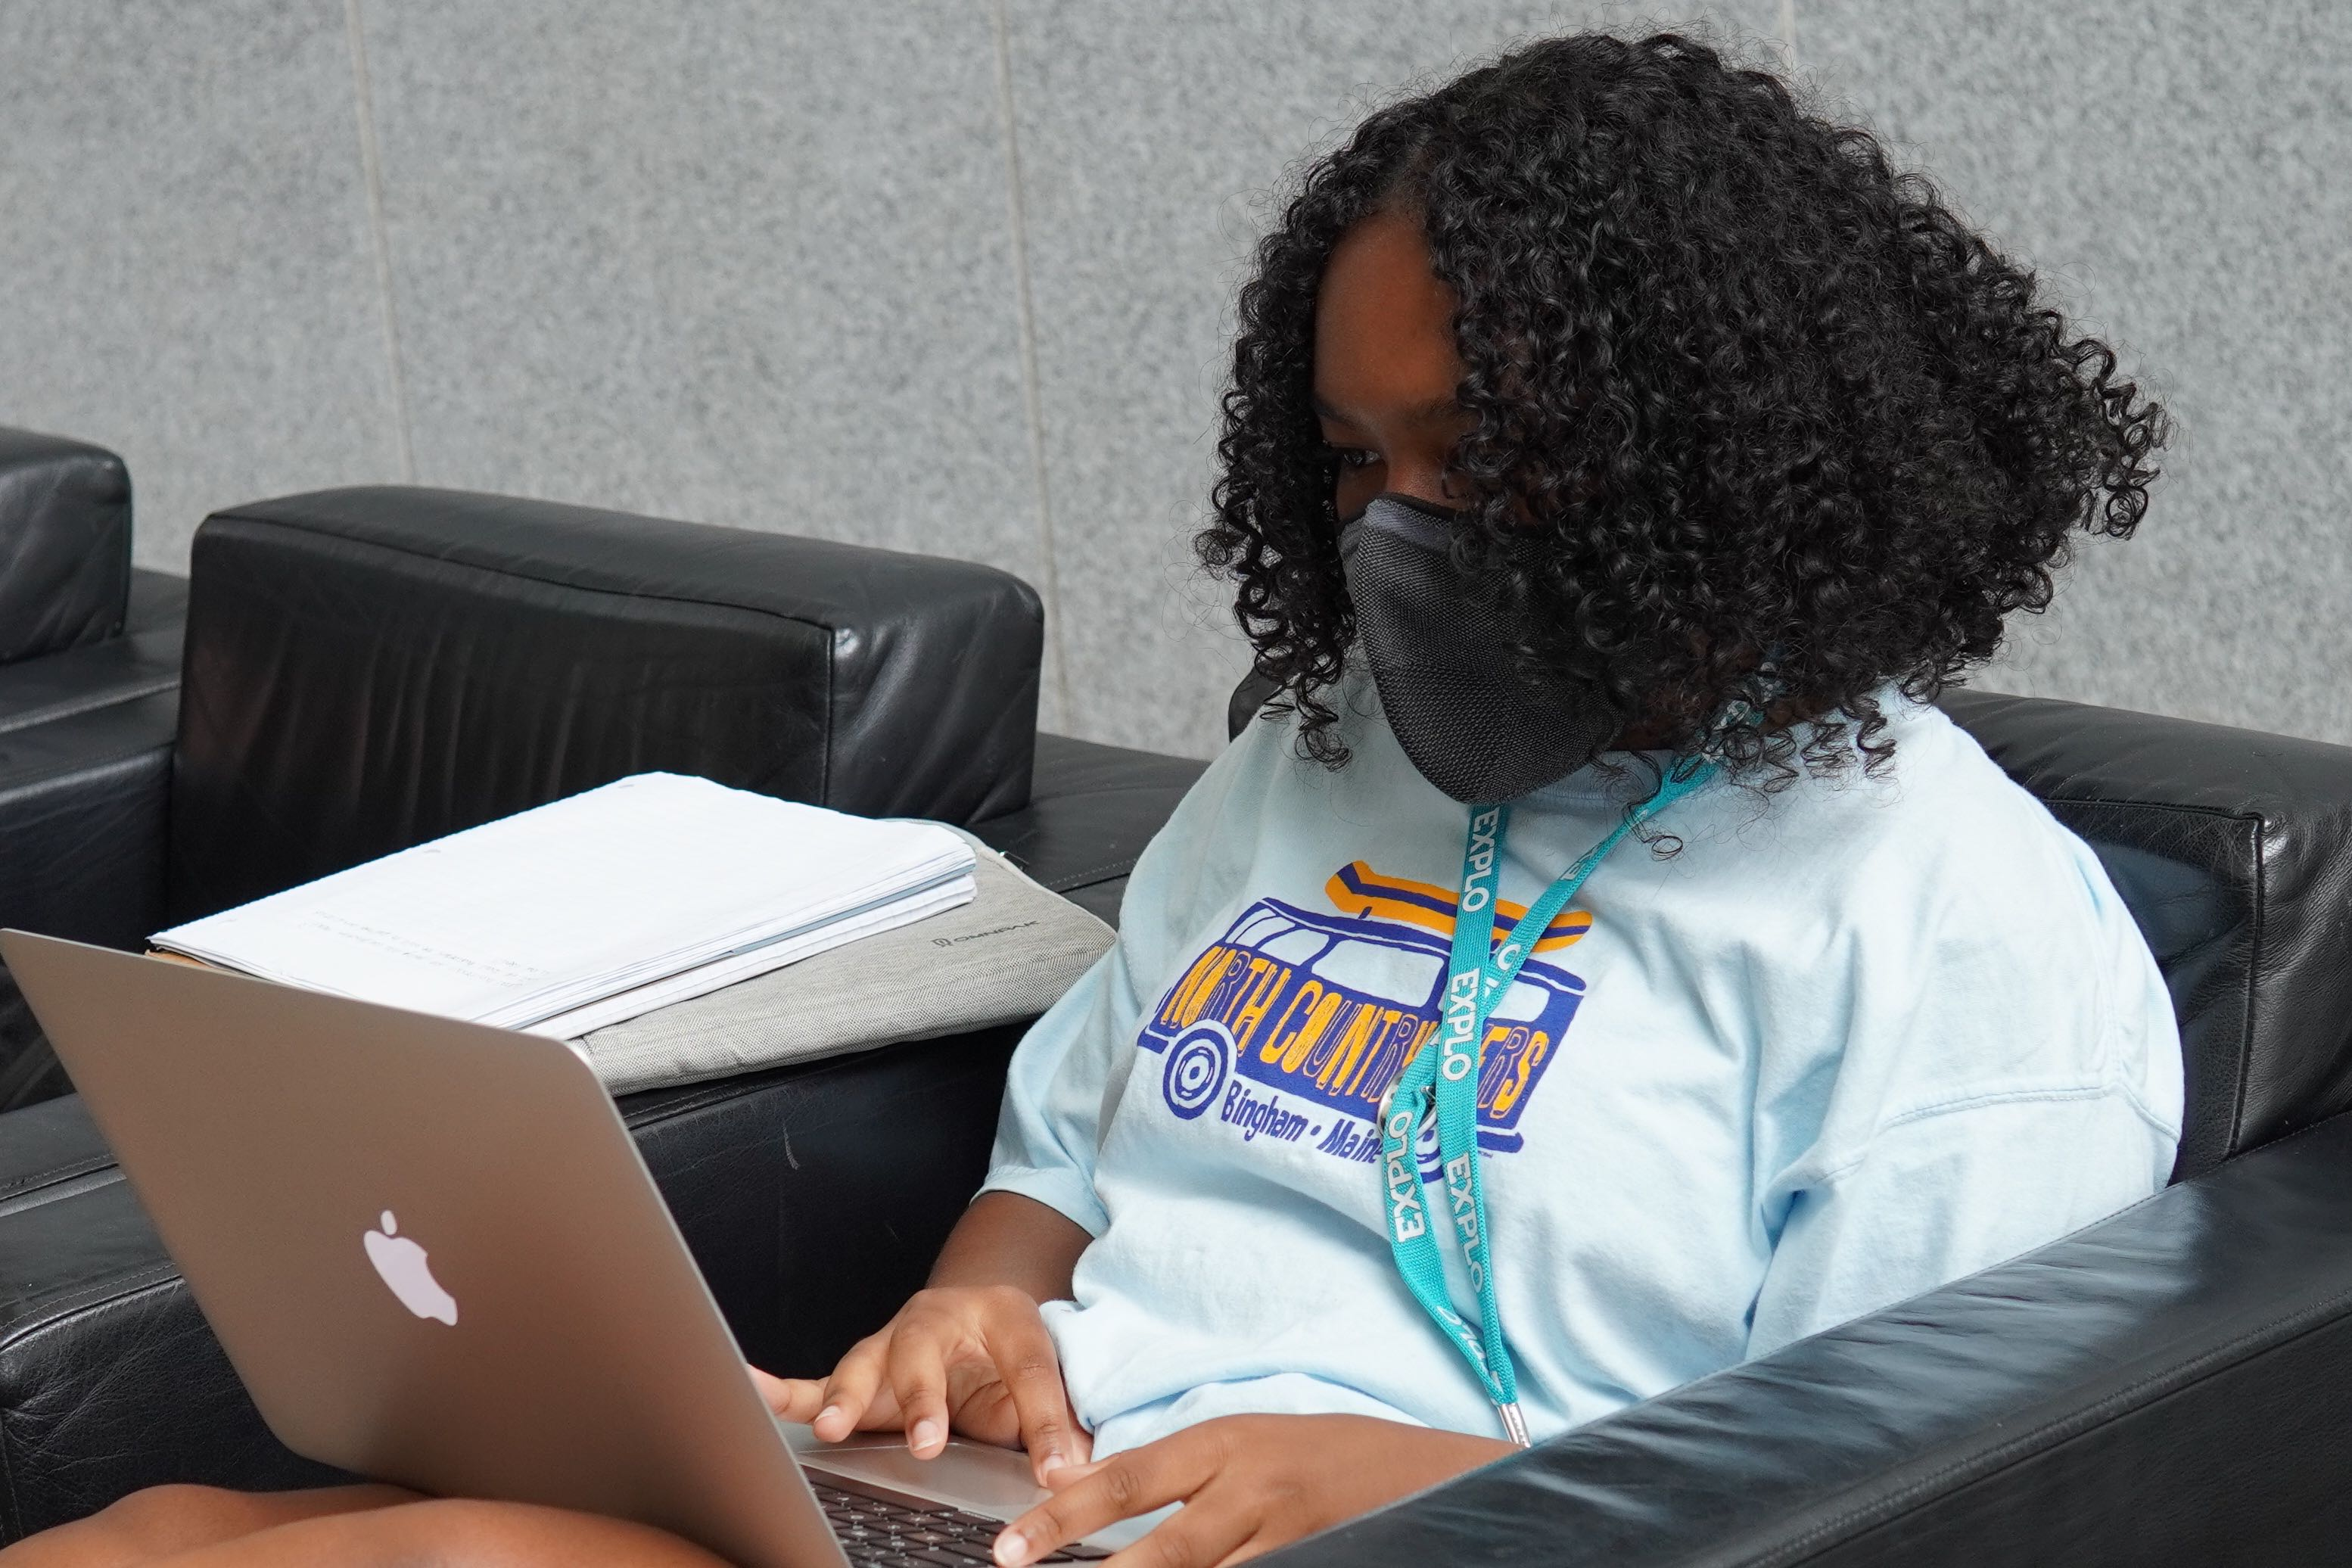 A student works on a laptop in a black chair.